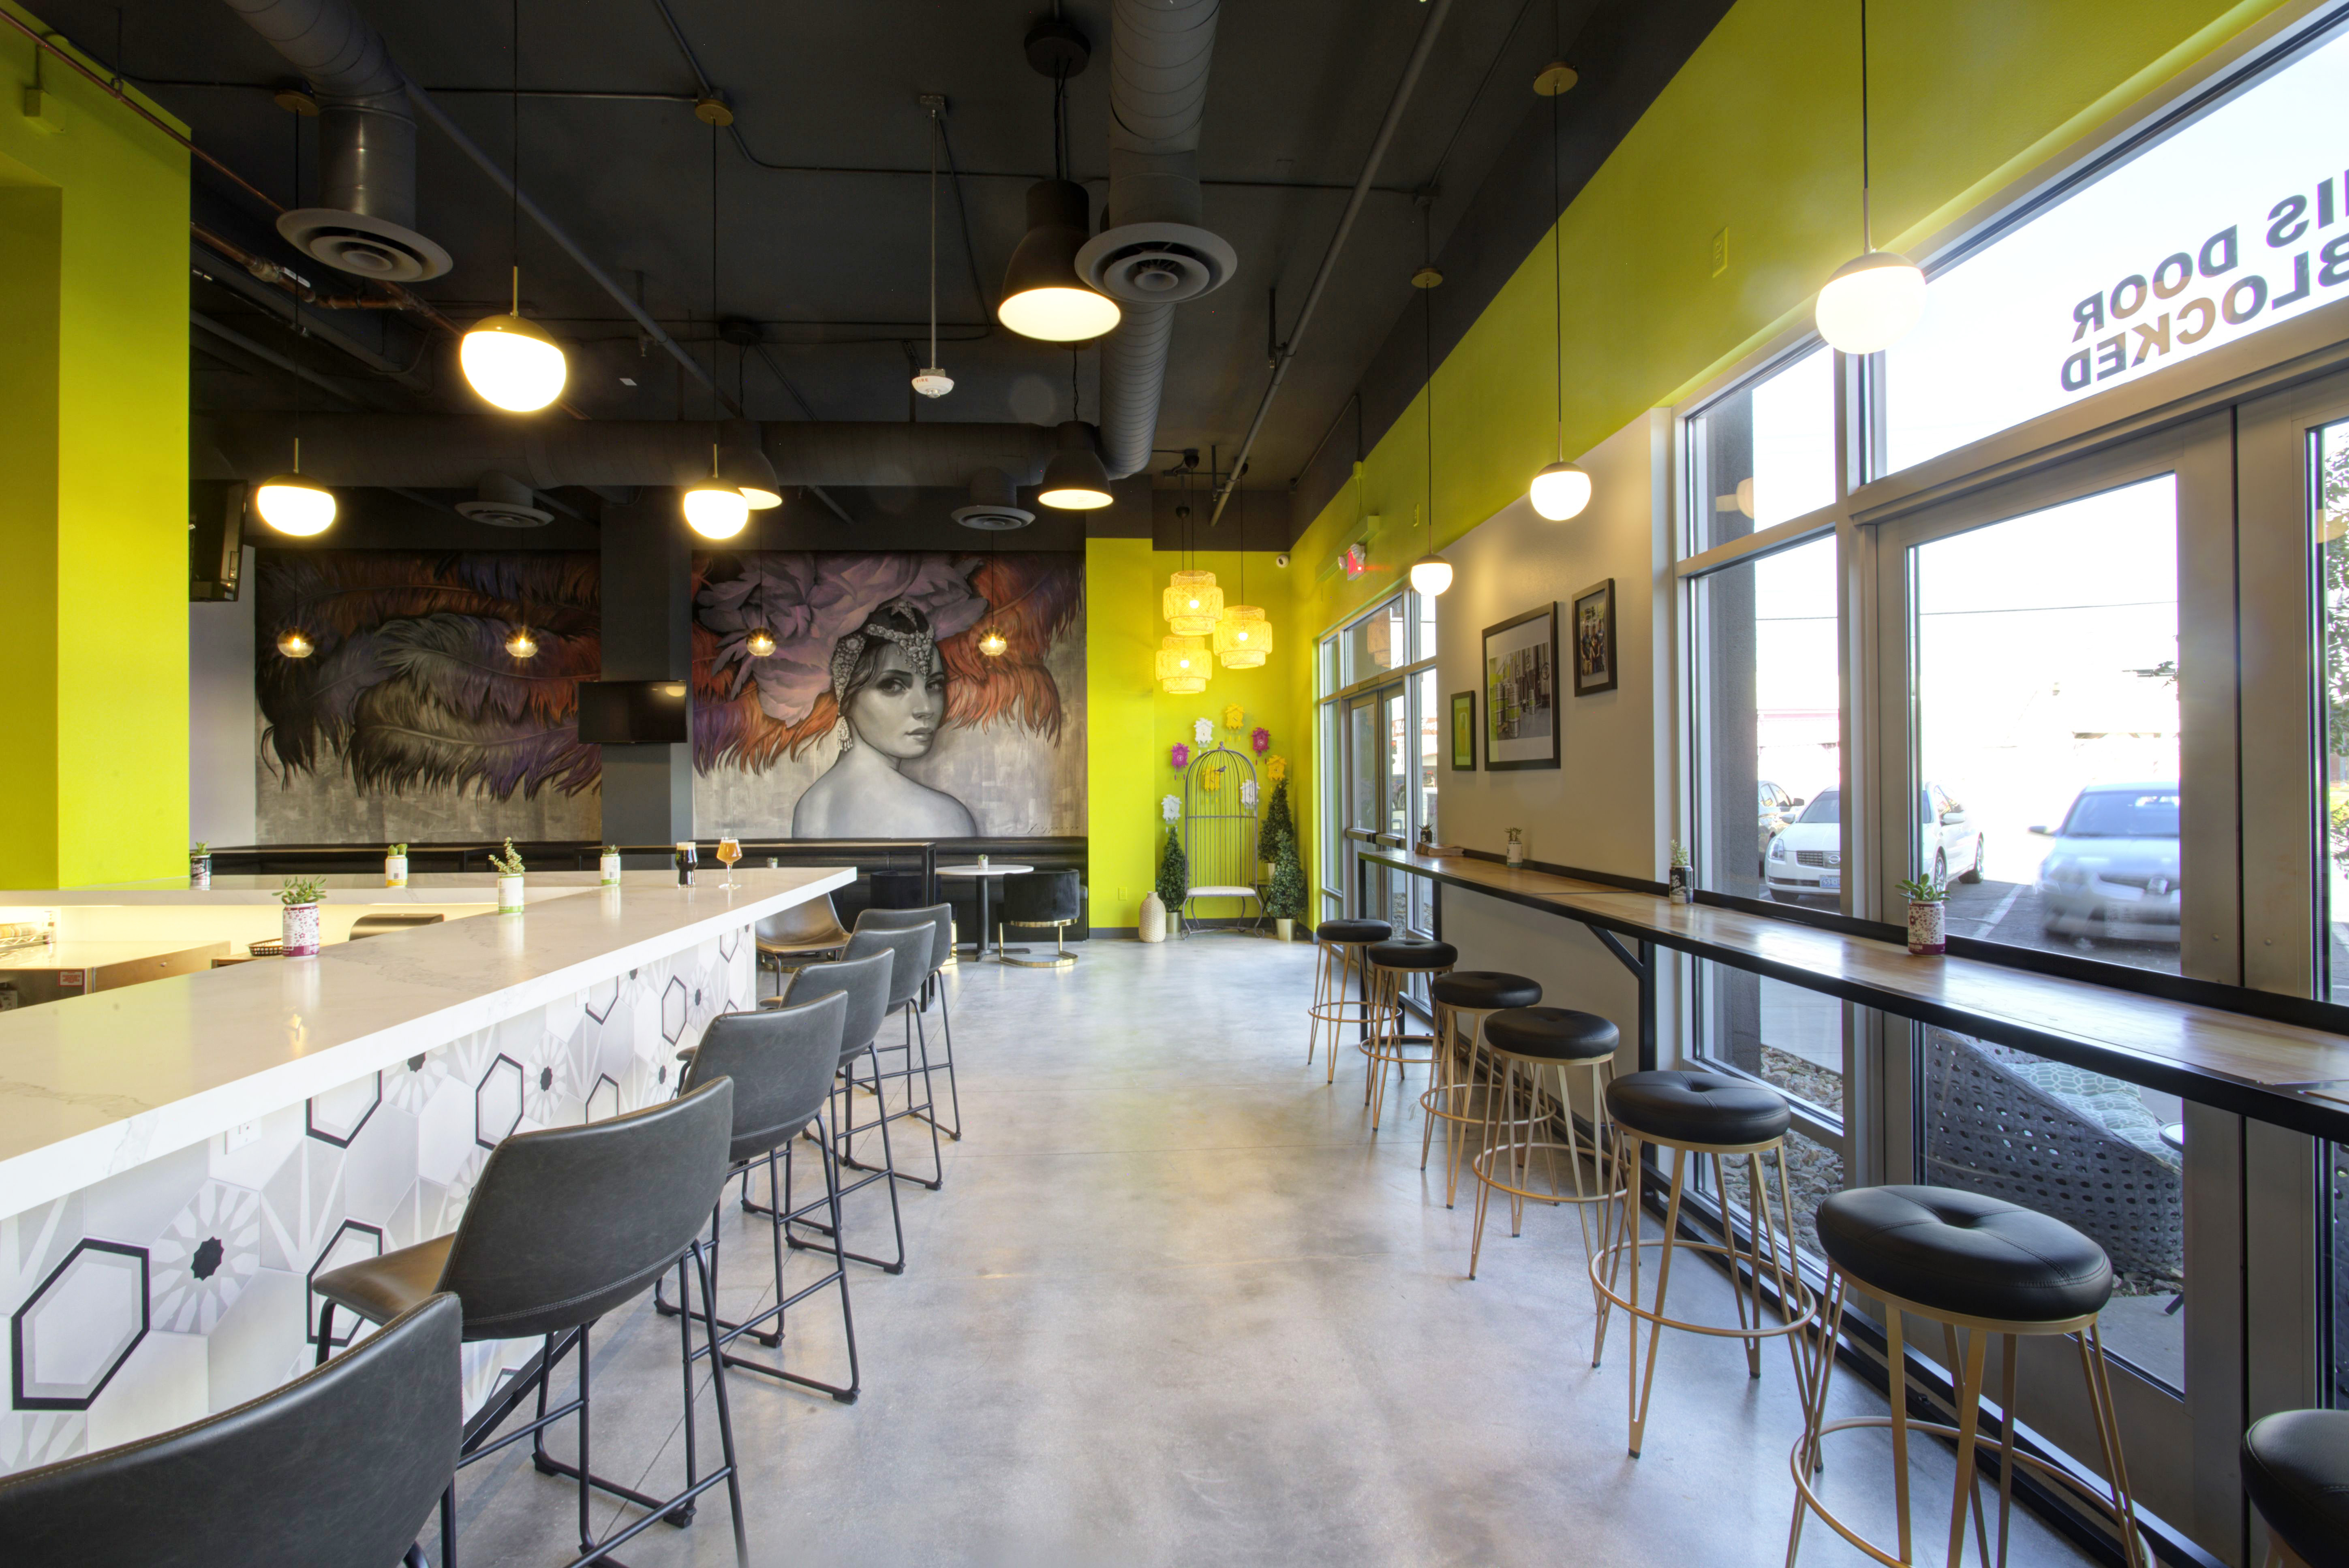 A taproom with a mural